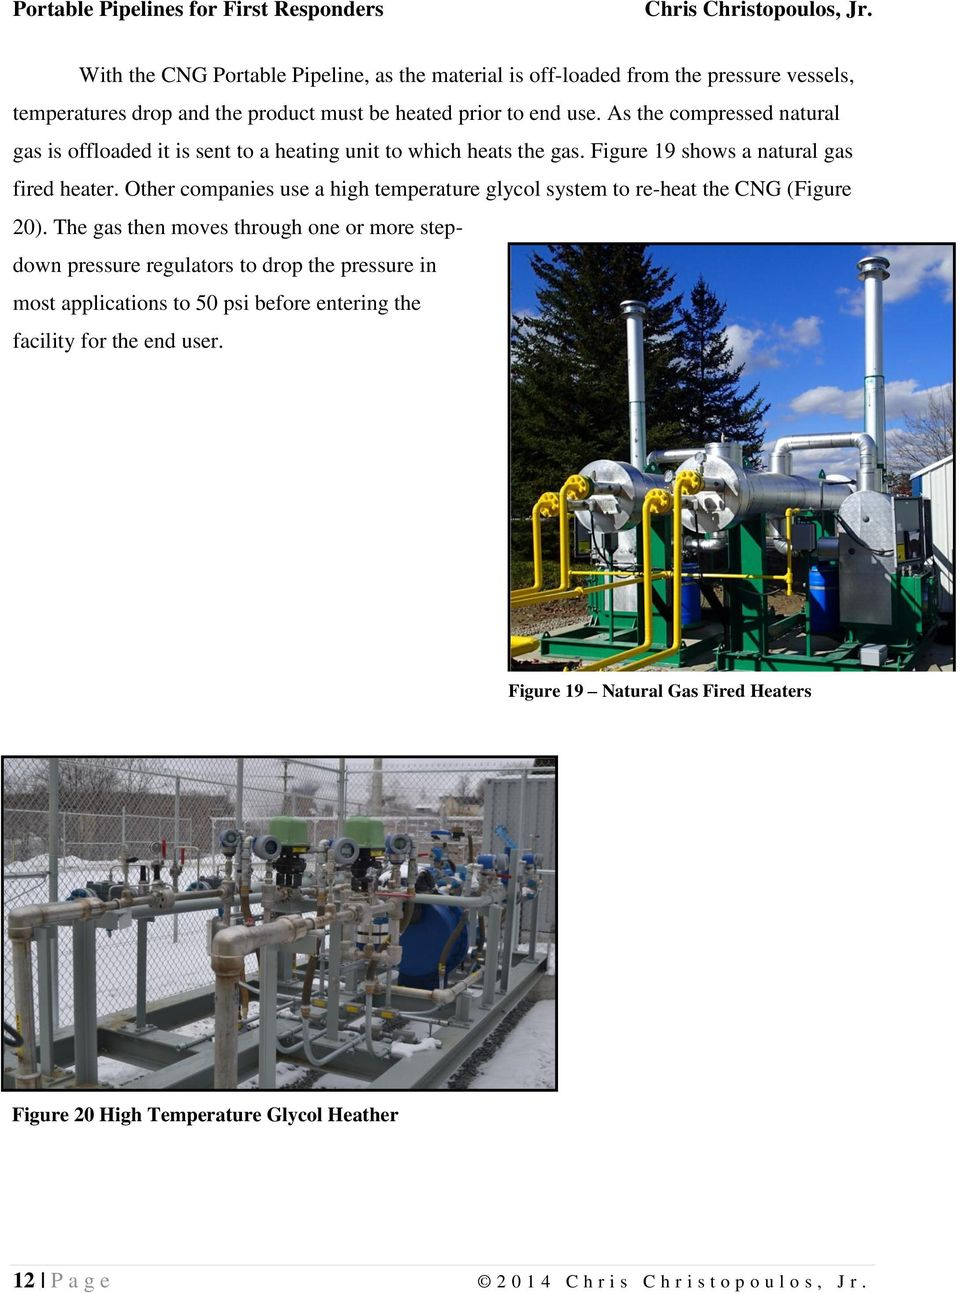 Other companies use a high temperature glycol system to re-heat the CNG (Figure 20).